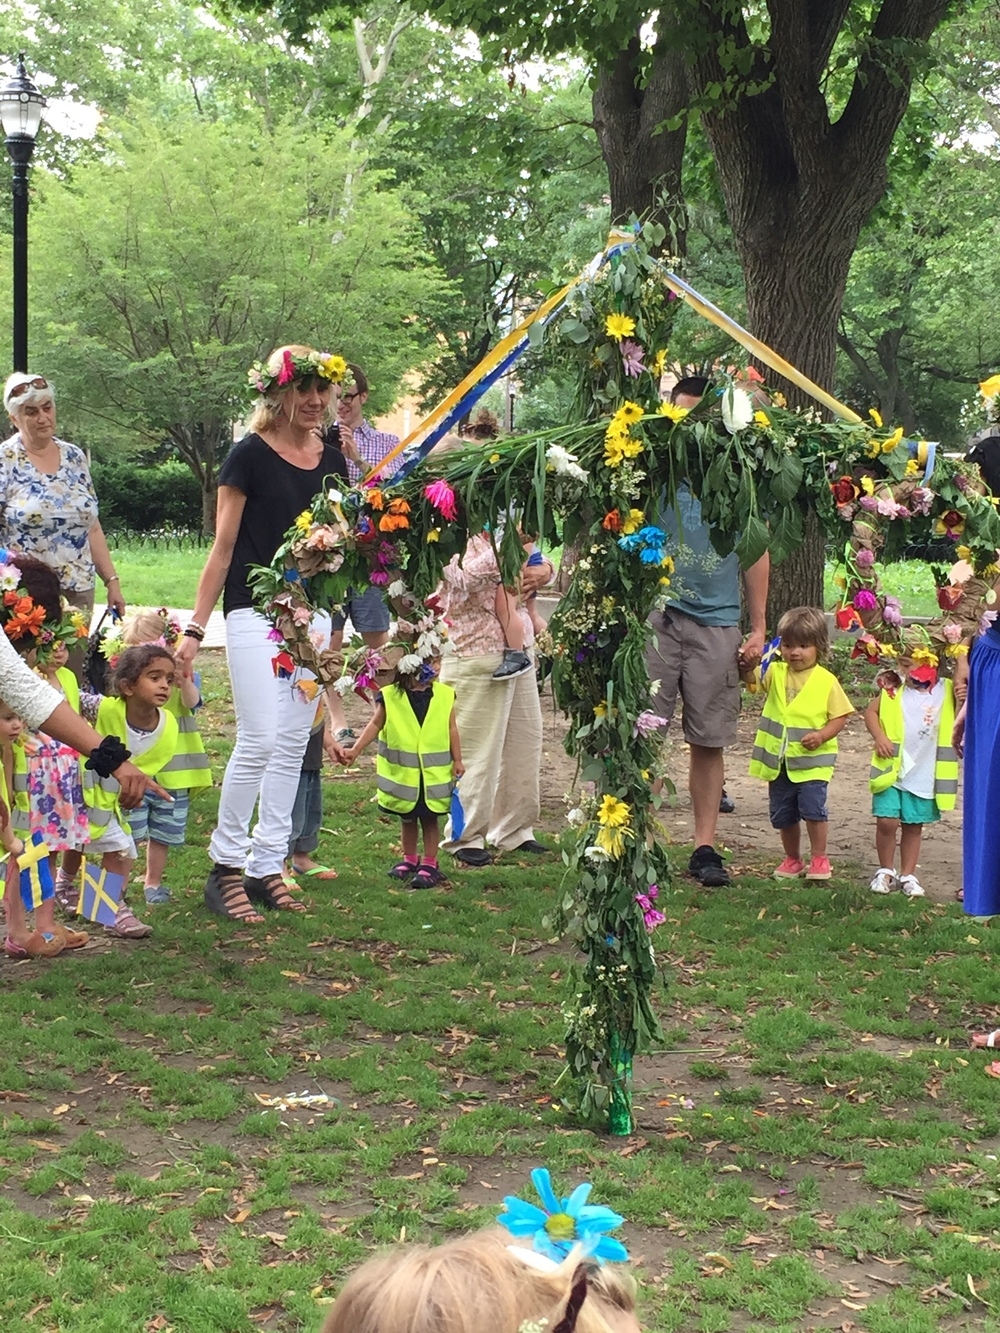 Annual Scandinavian Midsummer Celebration in Hamilton Park